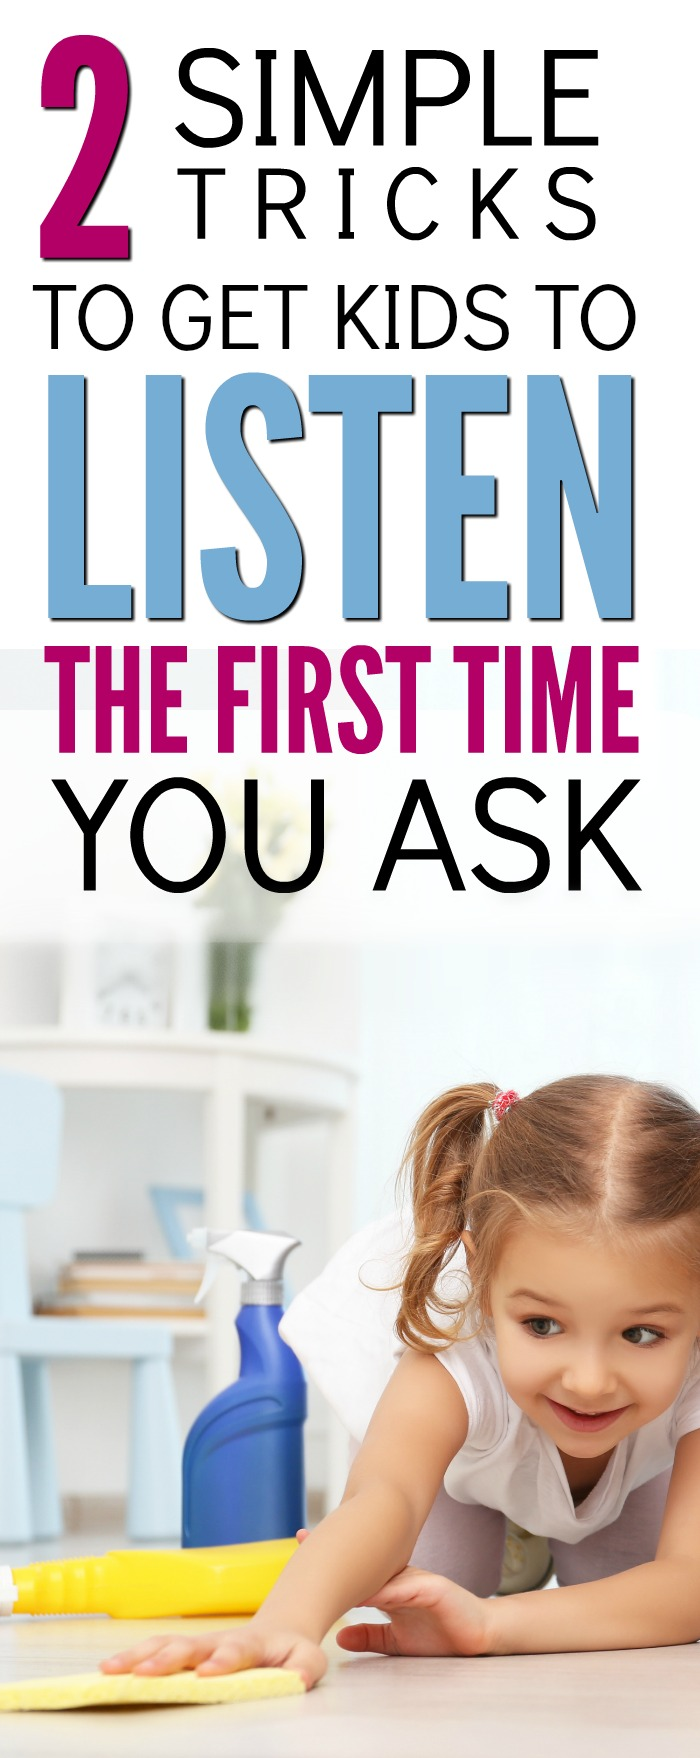 Tired of asking a million times for you kid to do something? Here's how to get them to listen the first time without yelling.